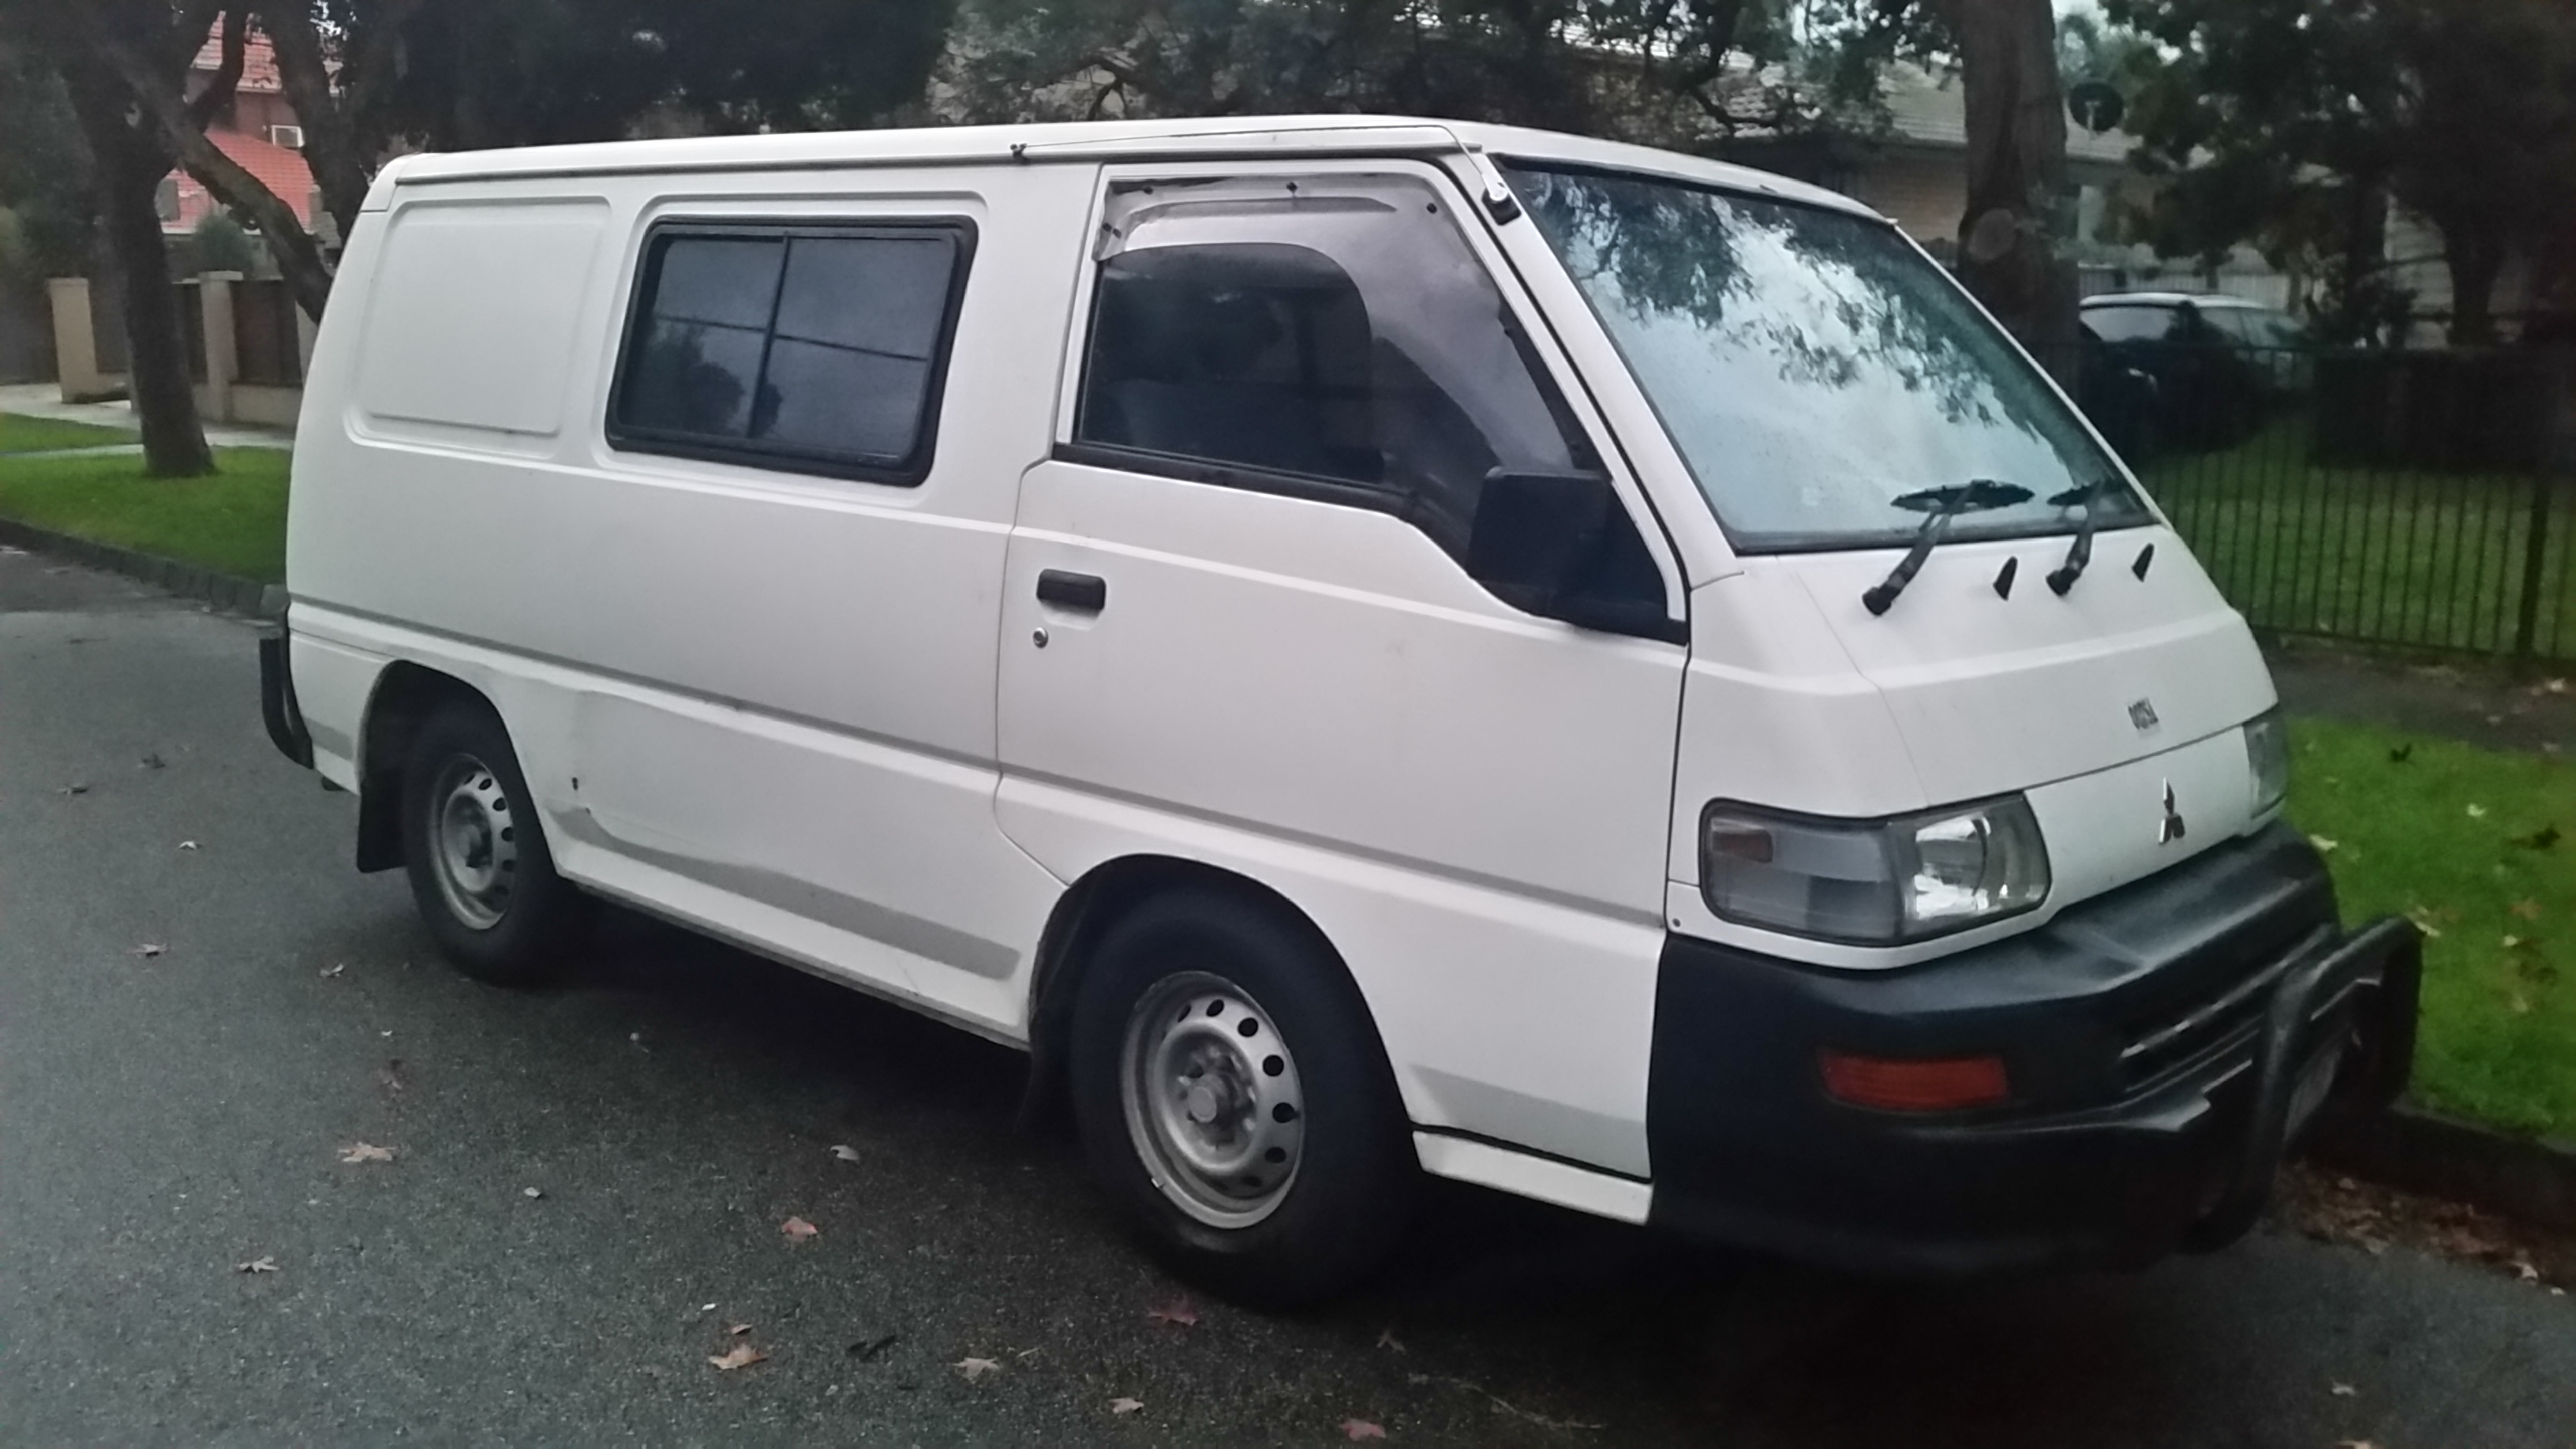 Picture of Ashley's 2003 Mitsubishi Express